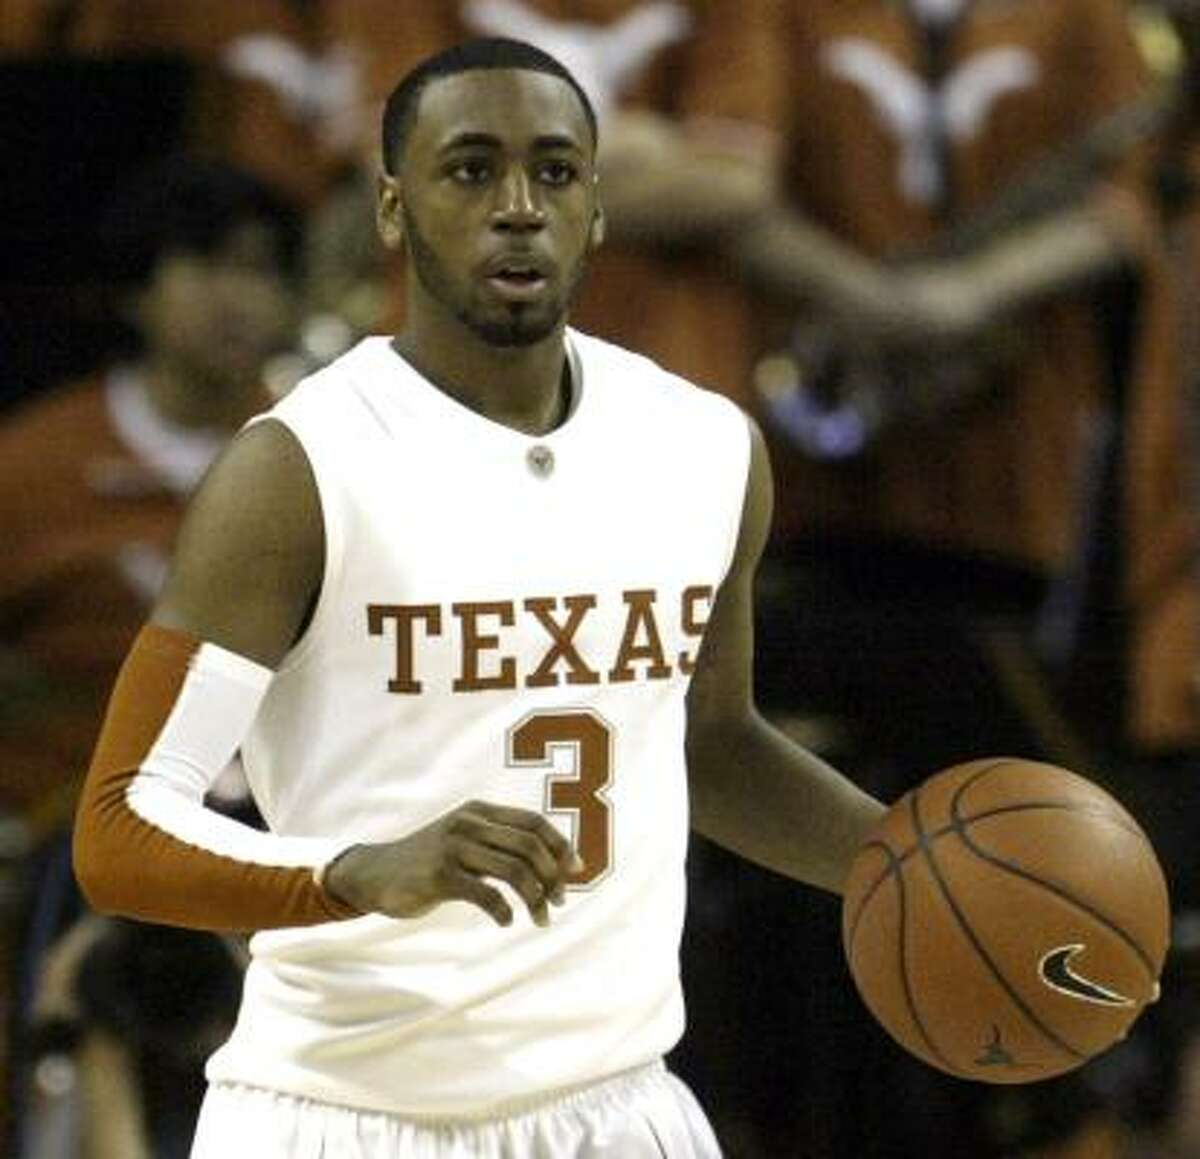 Texas guard A.J. Abrams brings the ball down court during the second half of an NCAA men's college baskebtall game against Stetson, Friday, Nov. 14, 2008, in Austin, Texas. Abrams was the high scorer with 21 total points in Texas' 68-38 victory over Stetson.